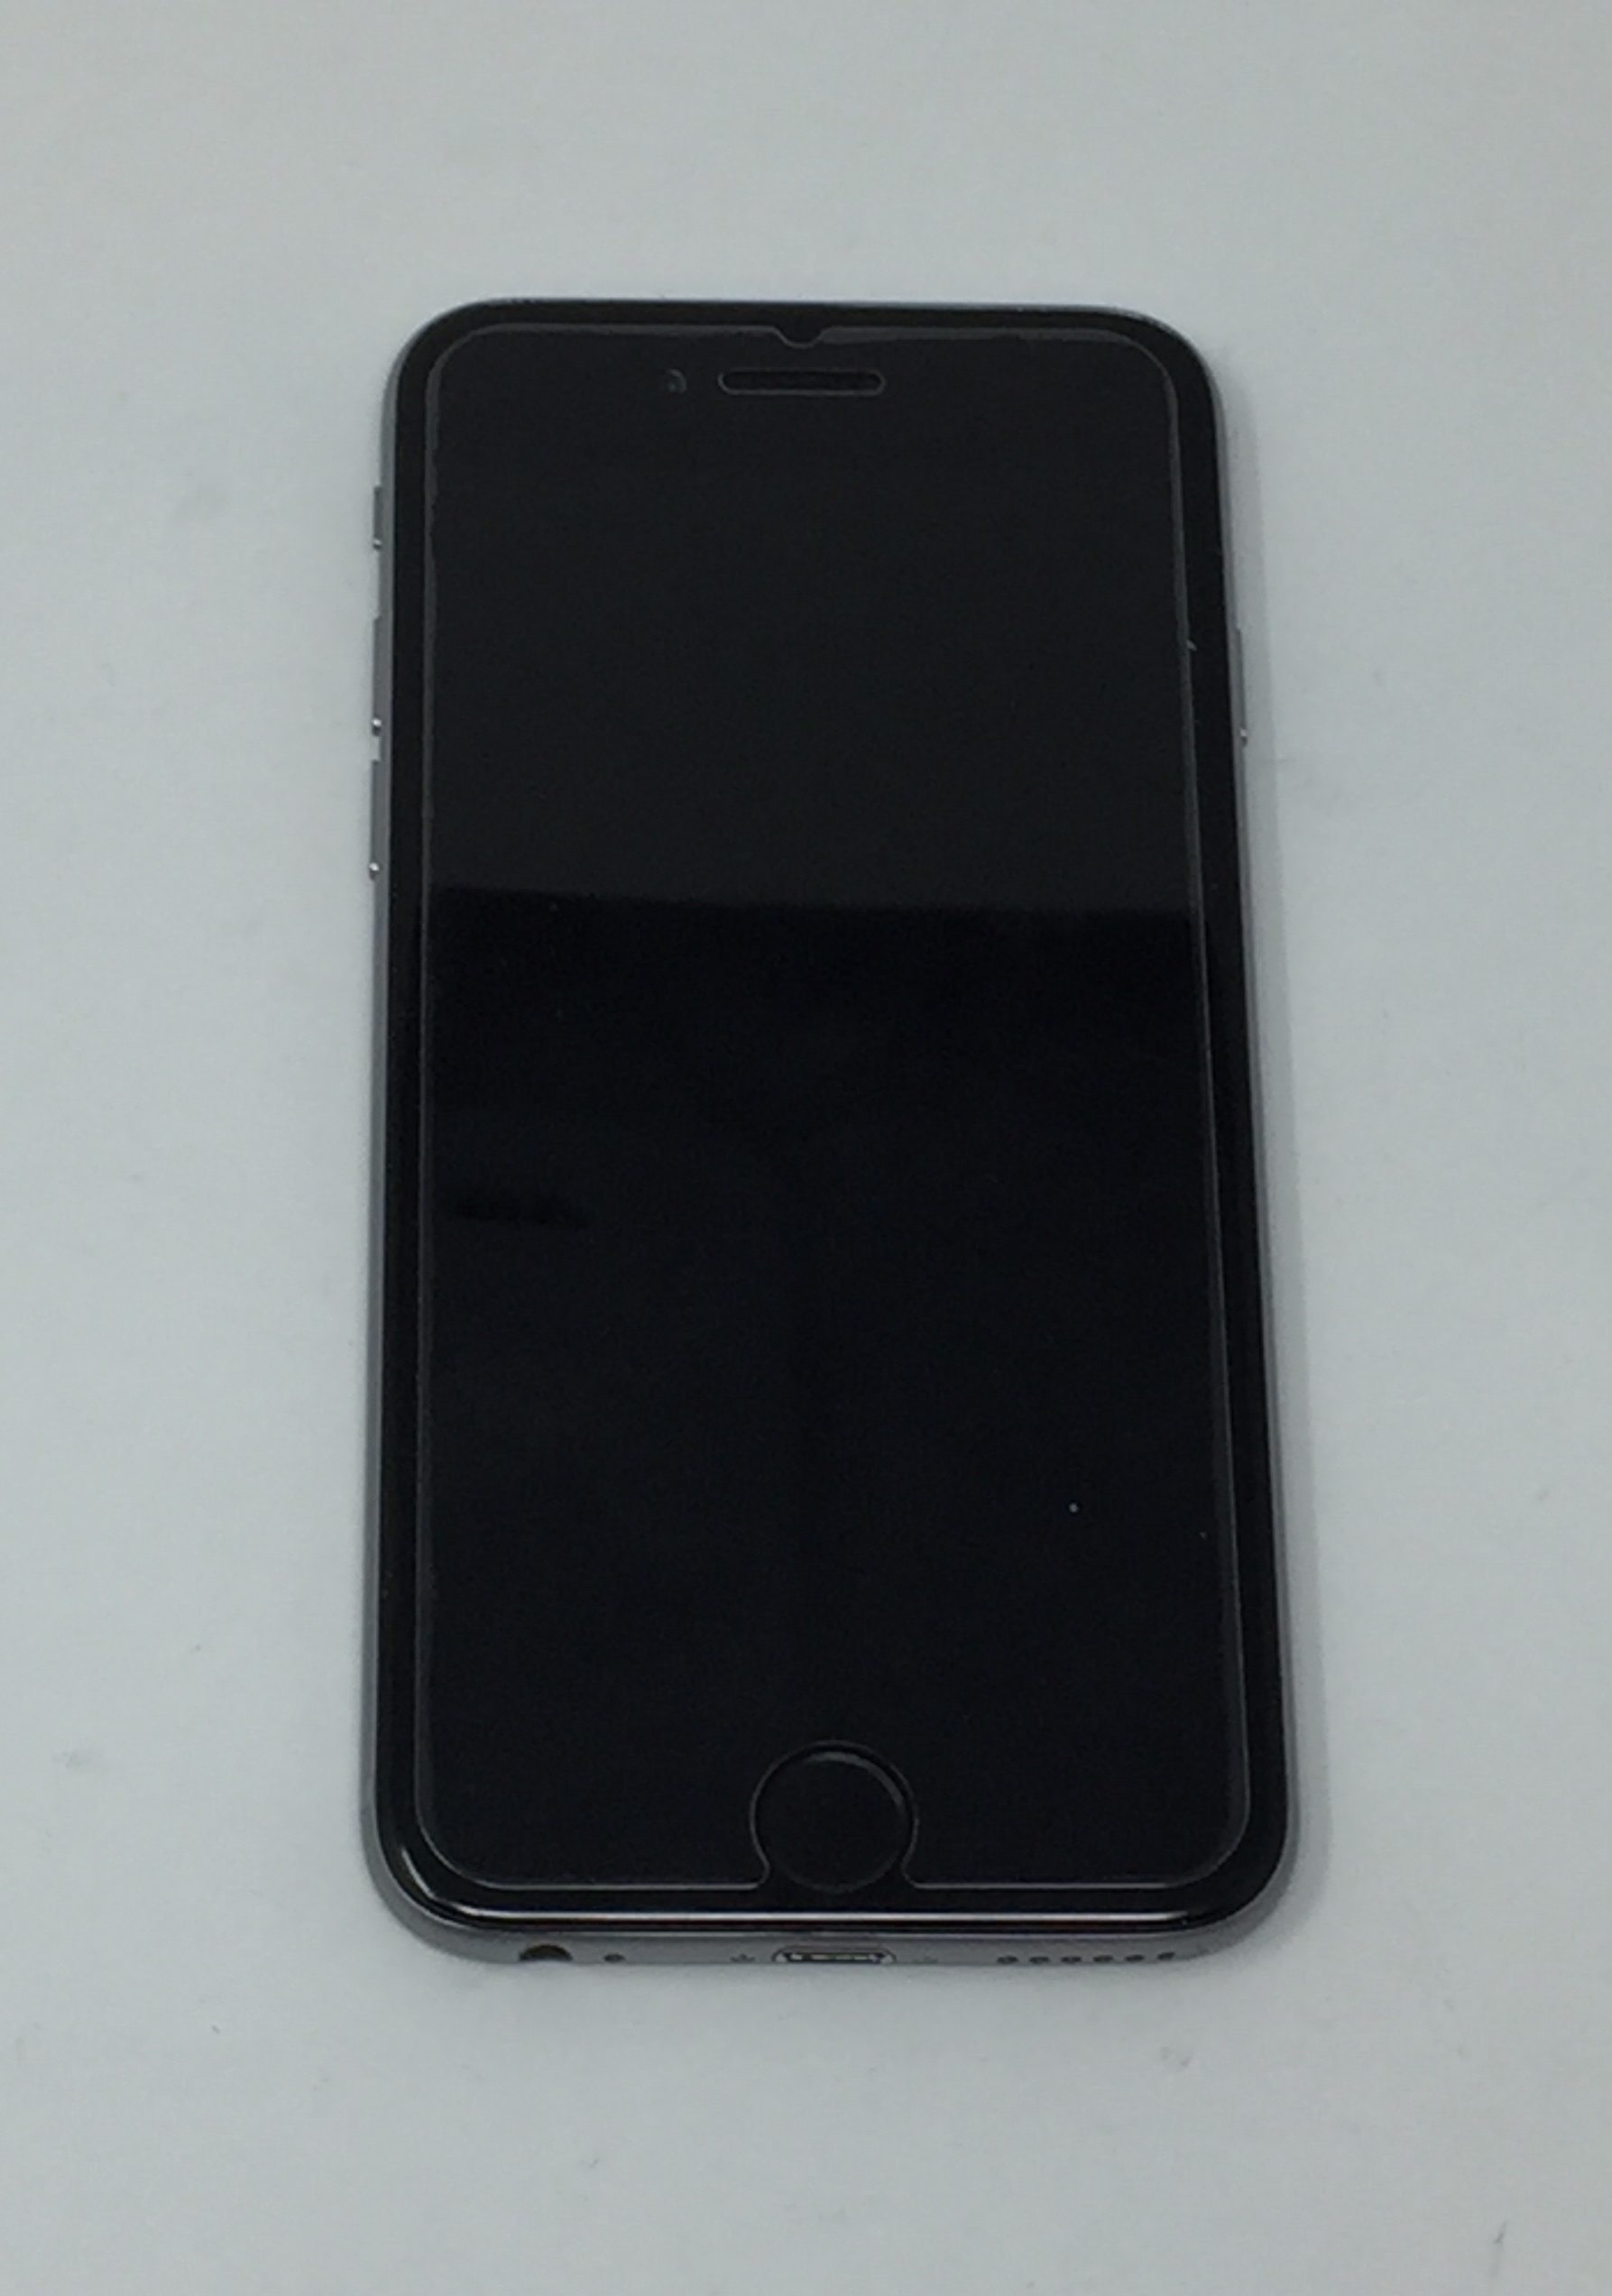 iPhone 6 32GB, 32 GB, GRAY, Bild 1